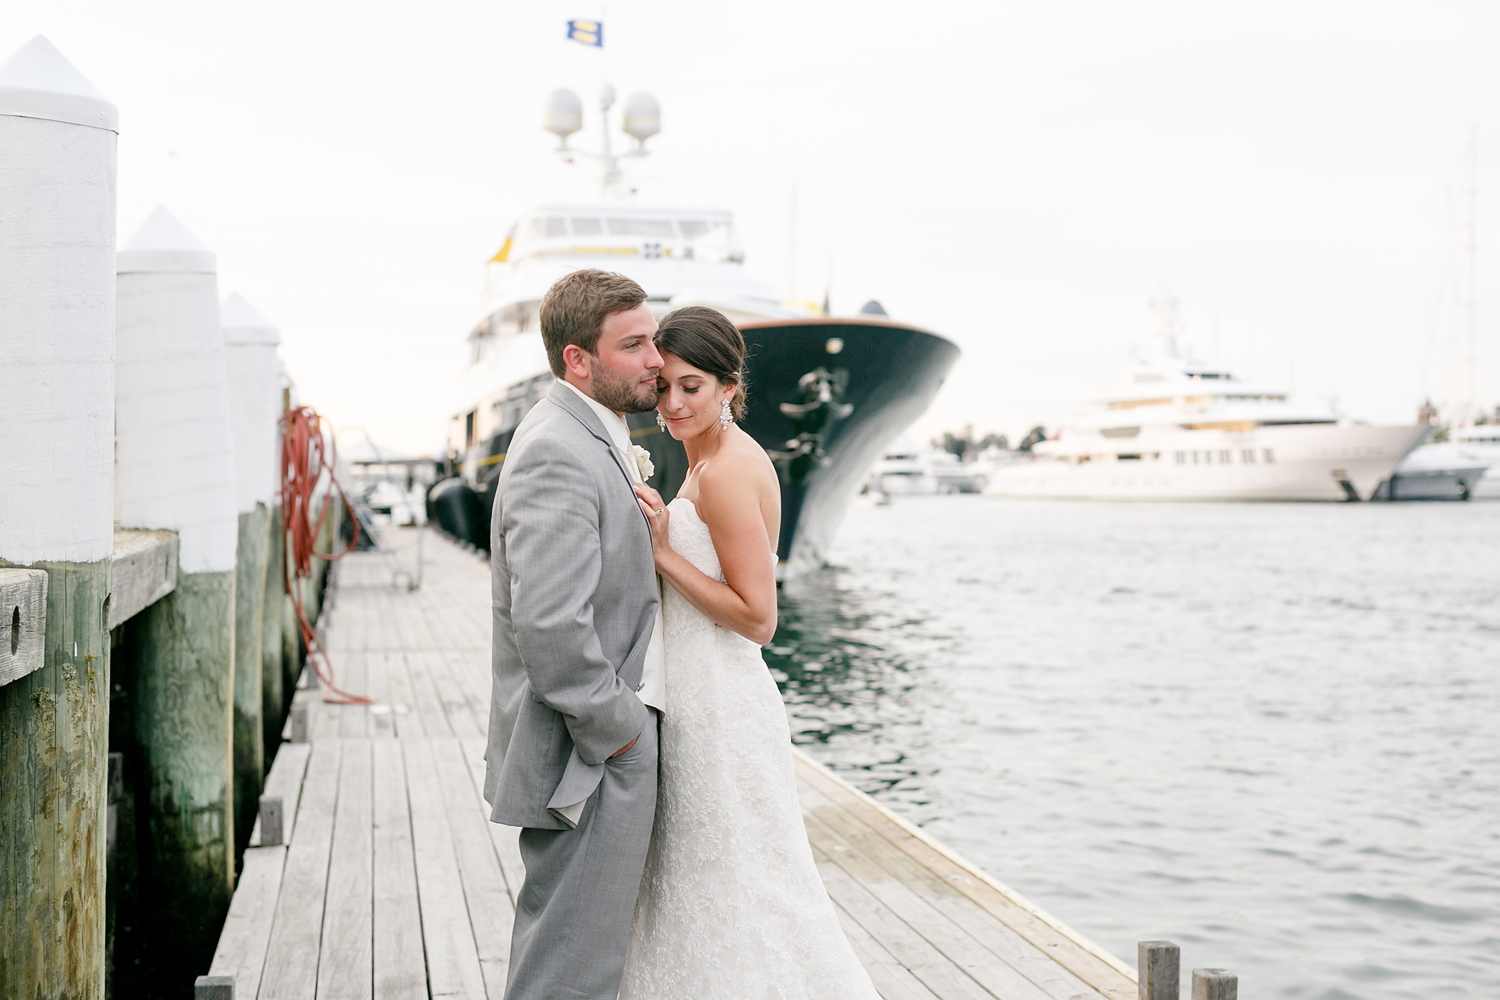 Wedding-Photographers-In-Newport-RI-15.jpg